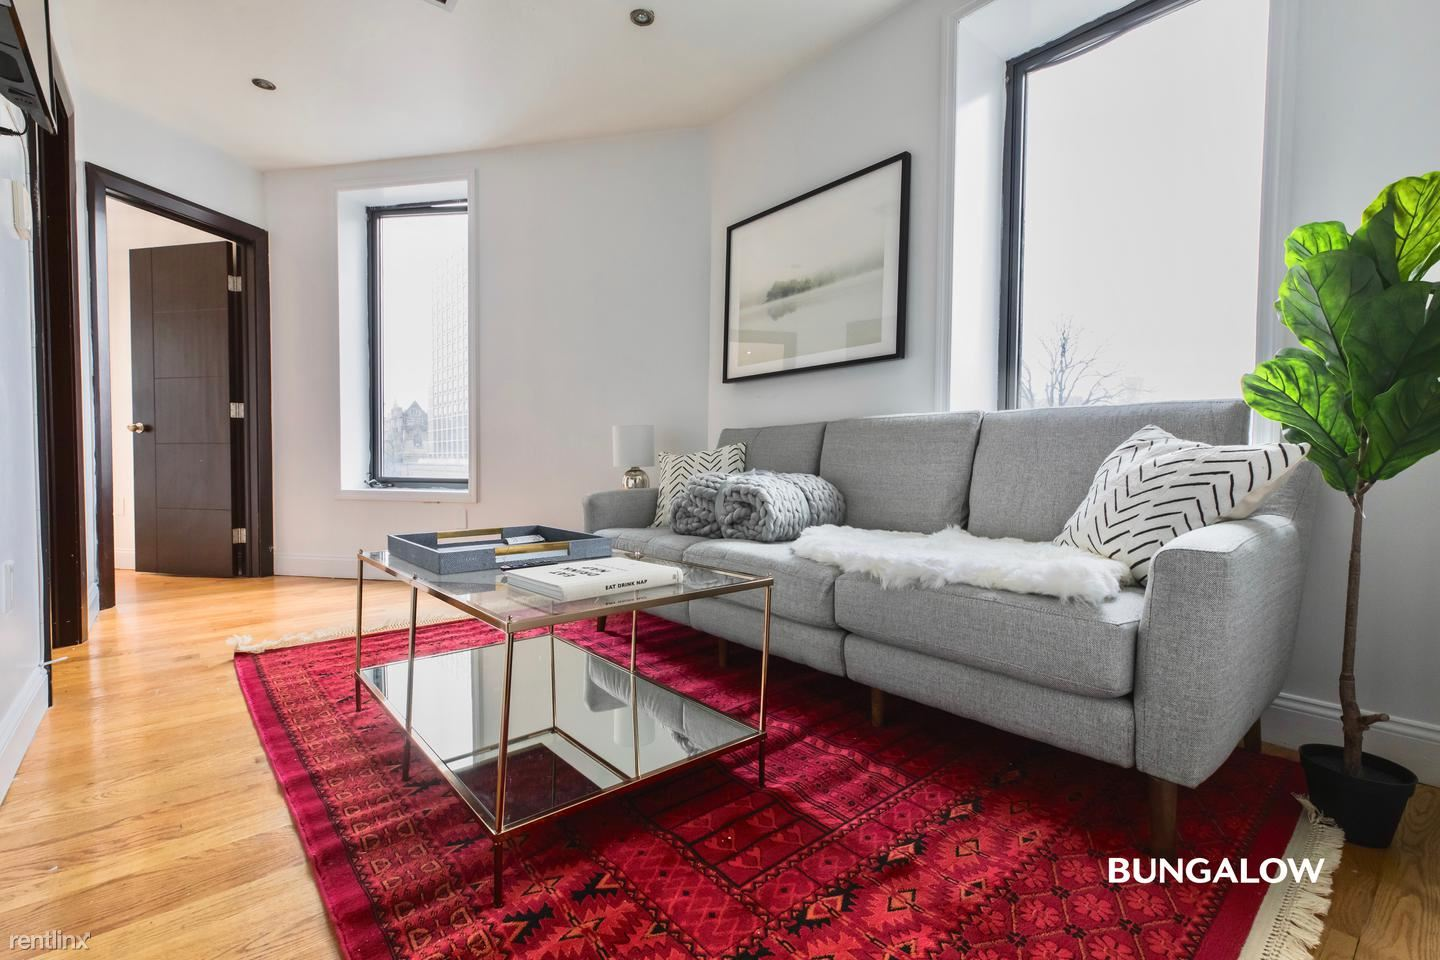 354 W 110th St, New York, NY - $1,105 USD/ month